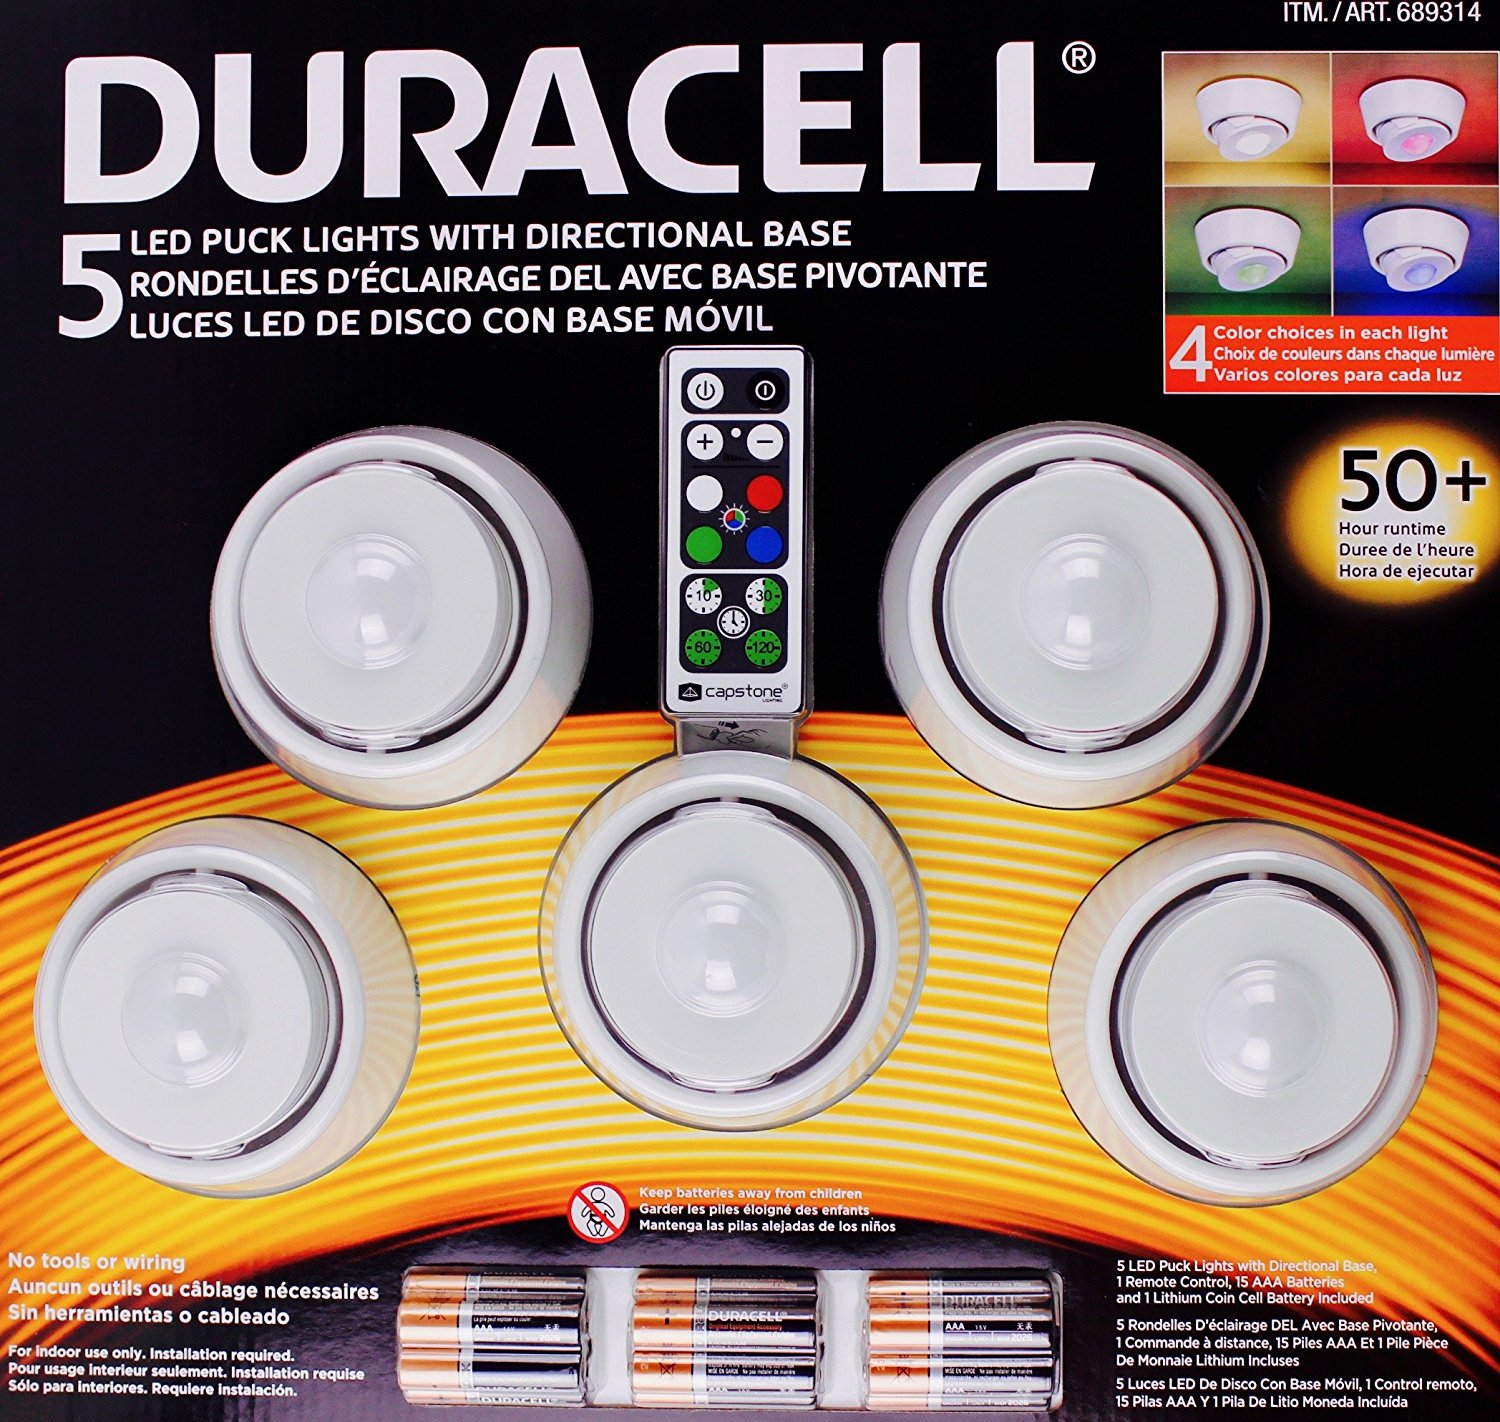 Duracell led puck lights with directional base 5 pack 631052004069 duracell led puck lights with directional base 5 pack aloadofball Images